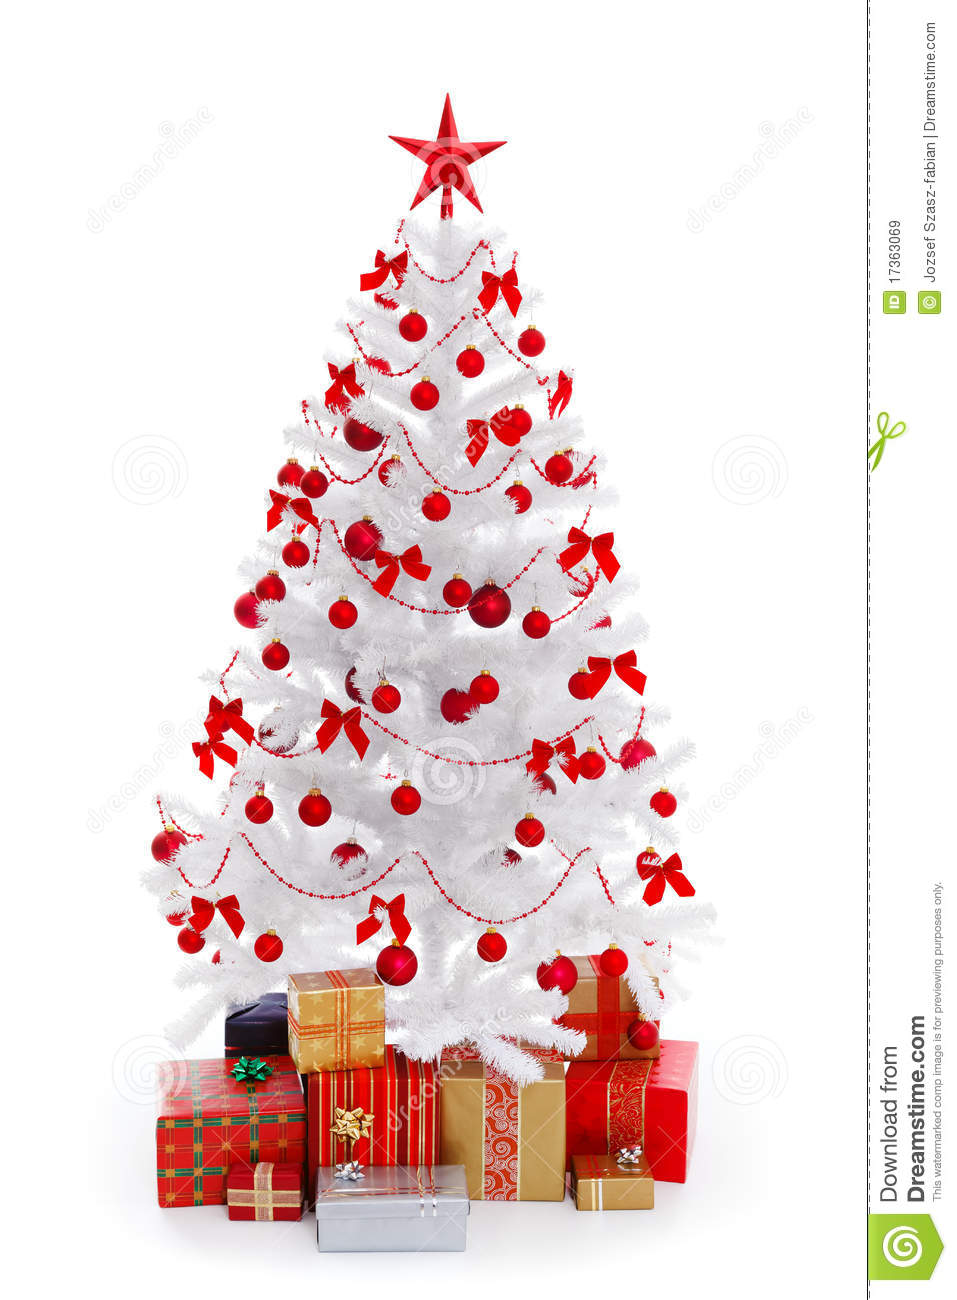 Red and white christmas tree decorating ideas - Christmas Isolated Red Tree White Xmas Decorated